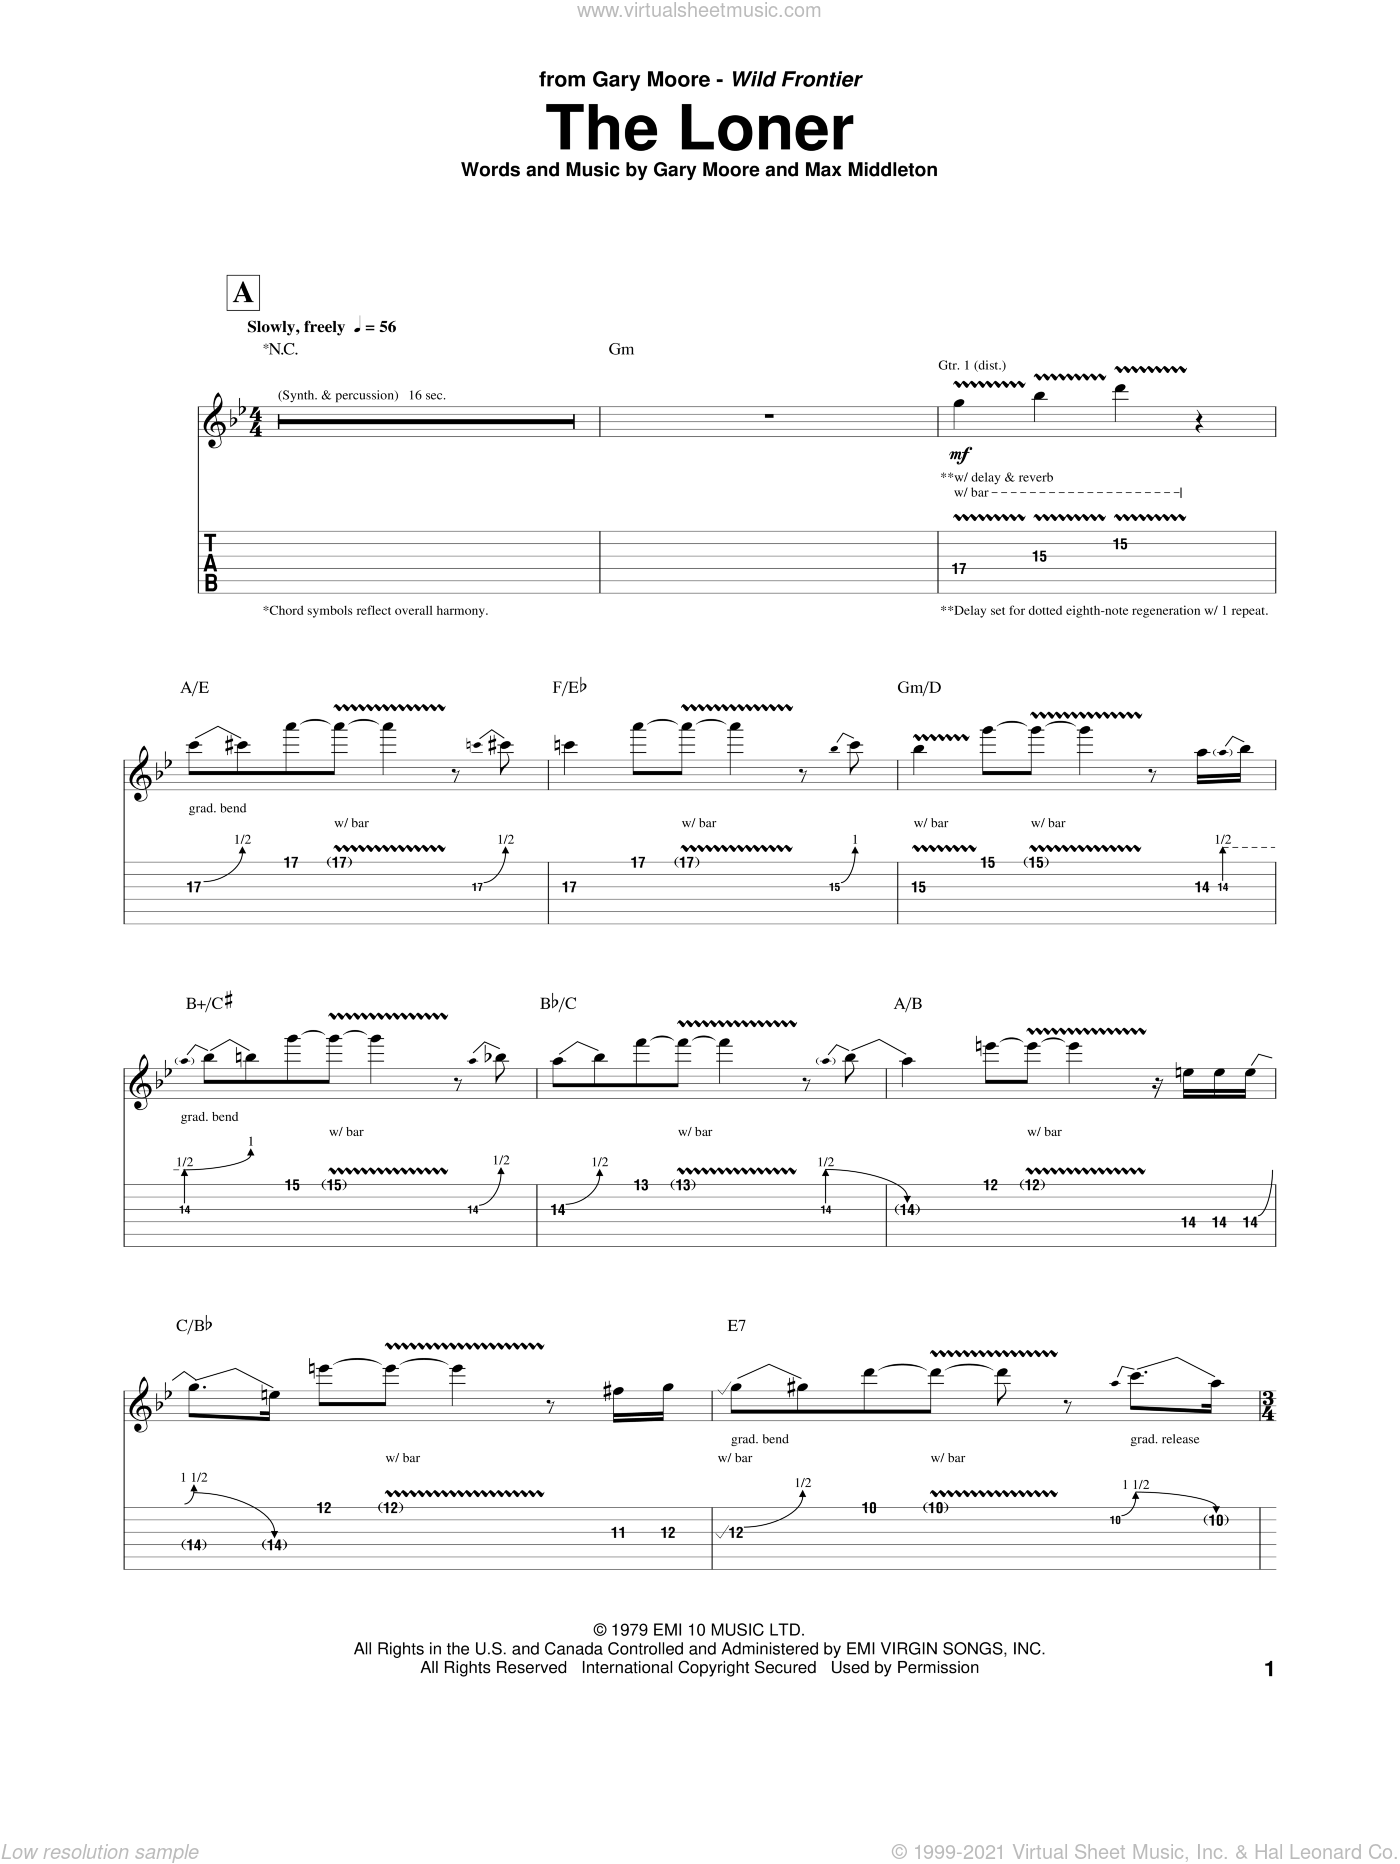 The Loner sheet music for guitar (tablature) by Max Middleton